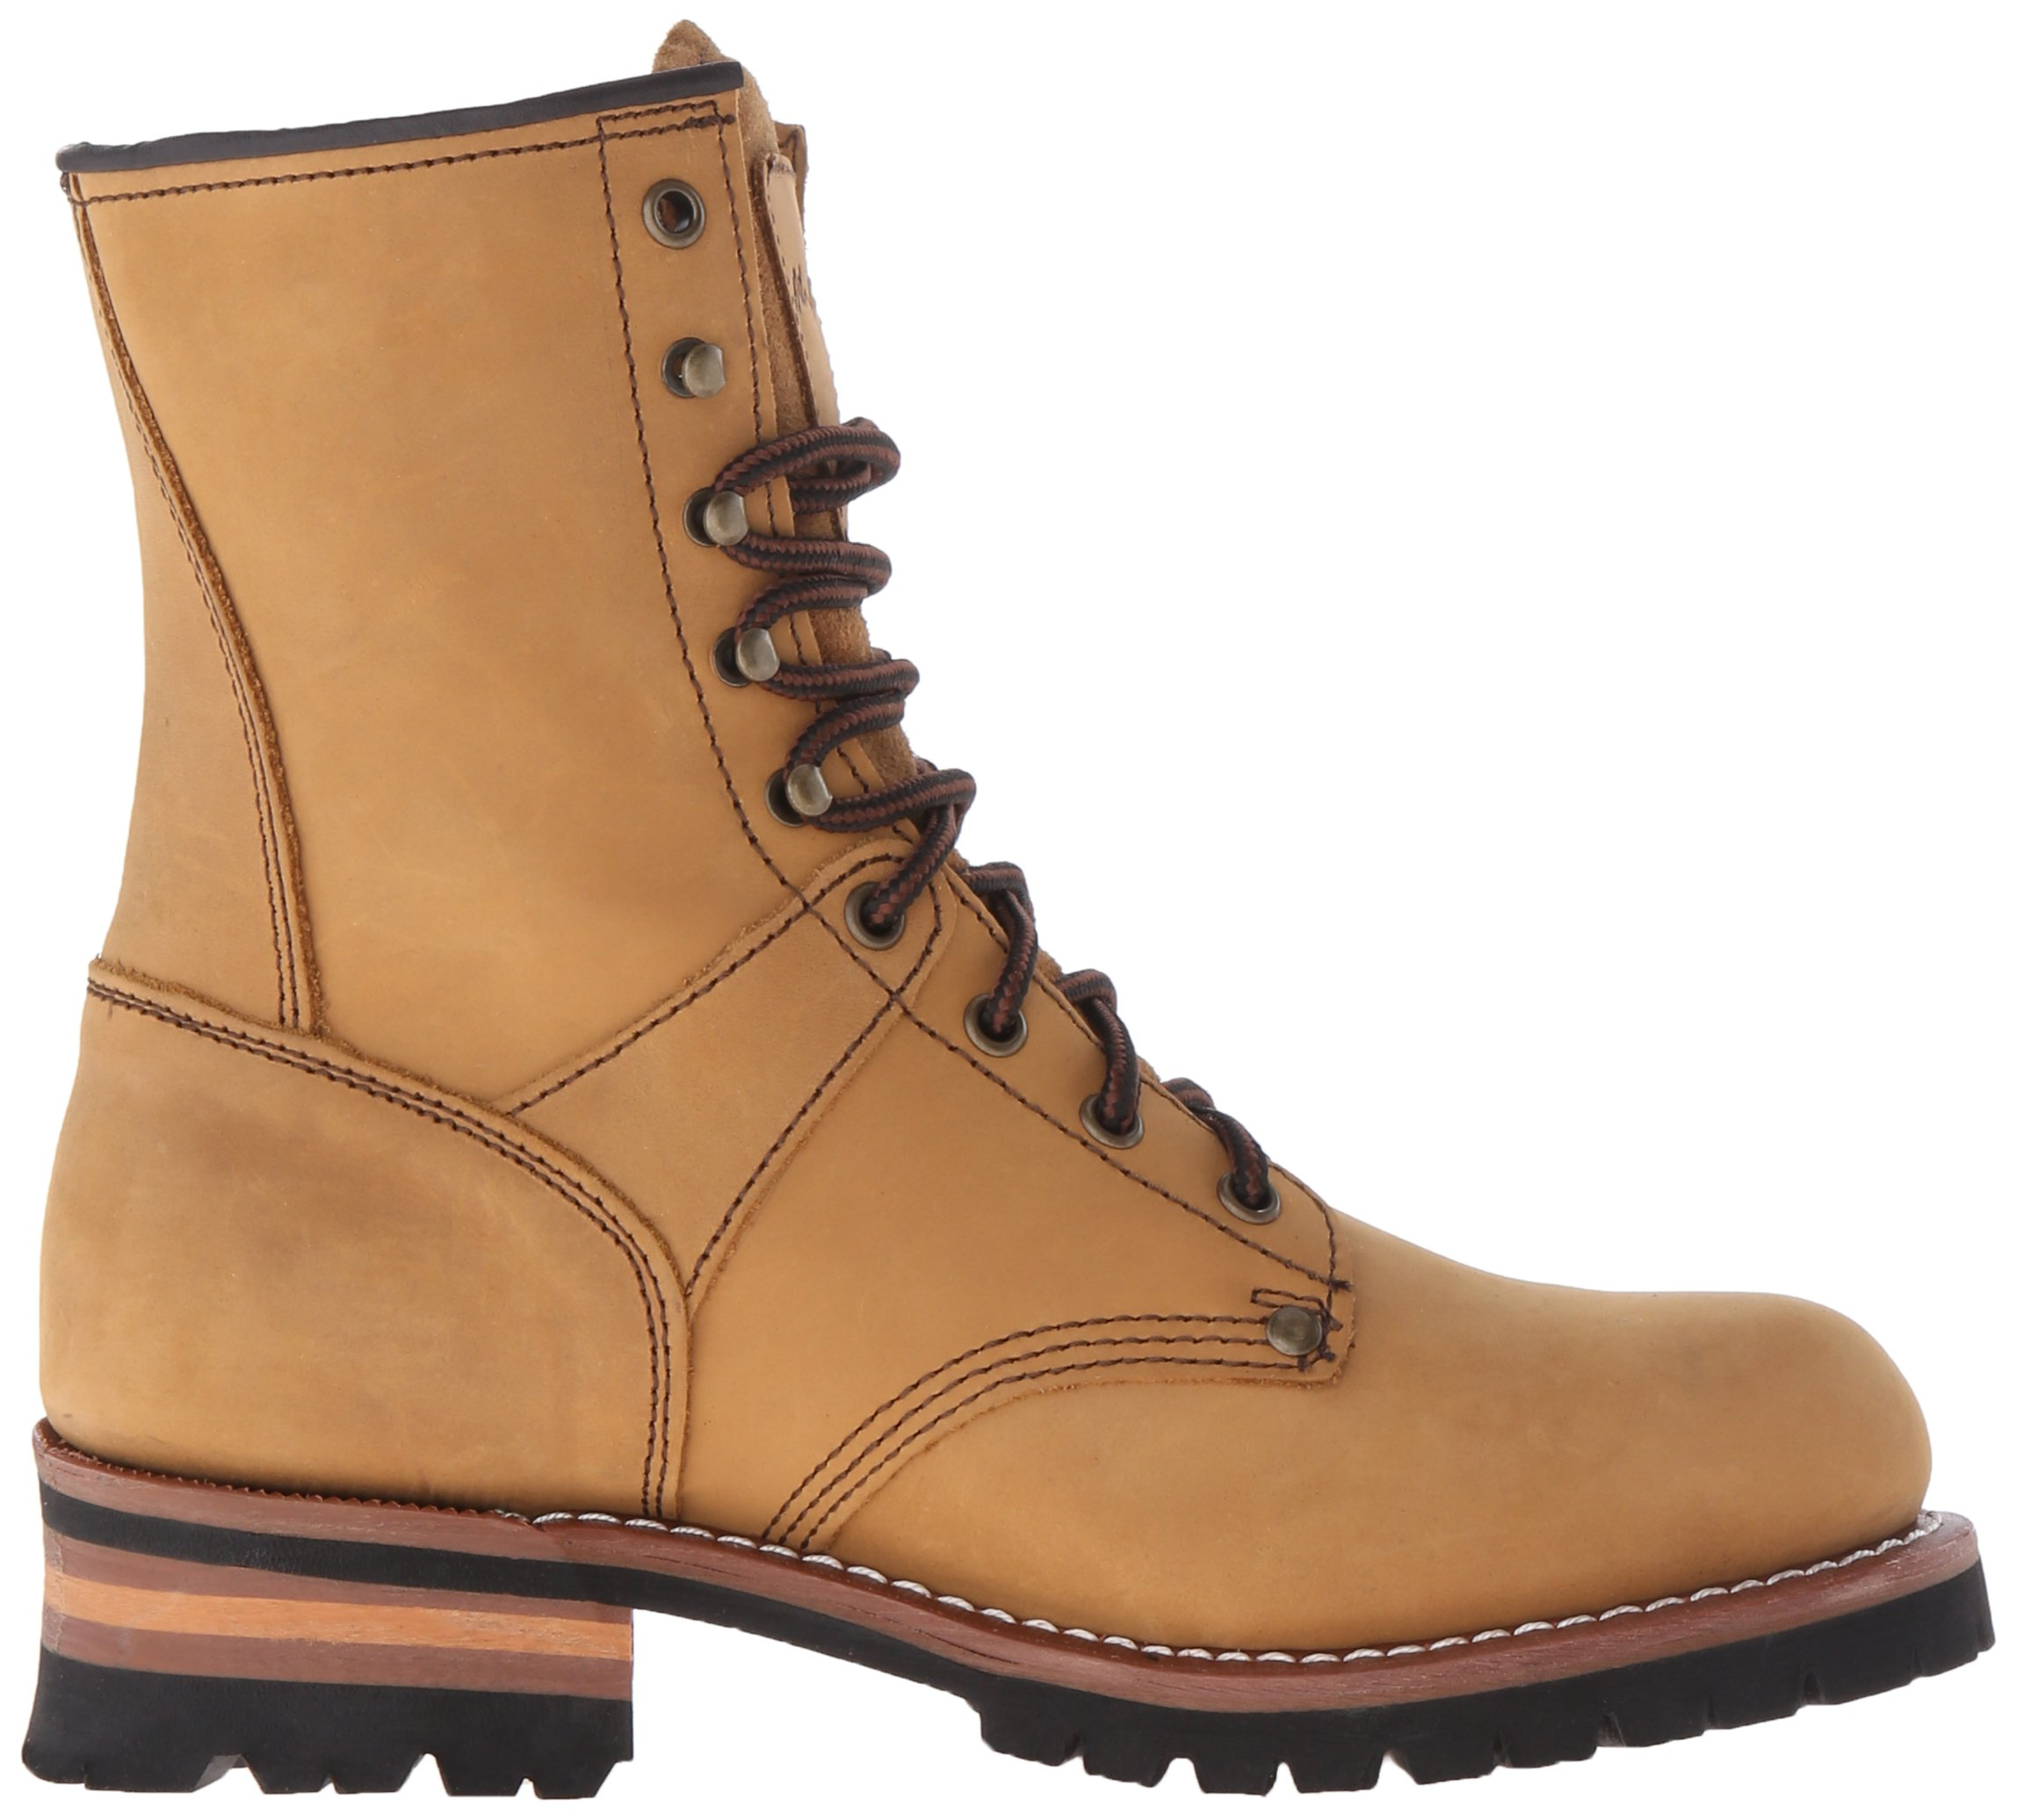 Adtec Men's 9 inch Logger Boot, Brown, 9 W US by Adtec (Image #7)